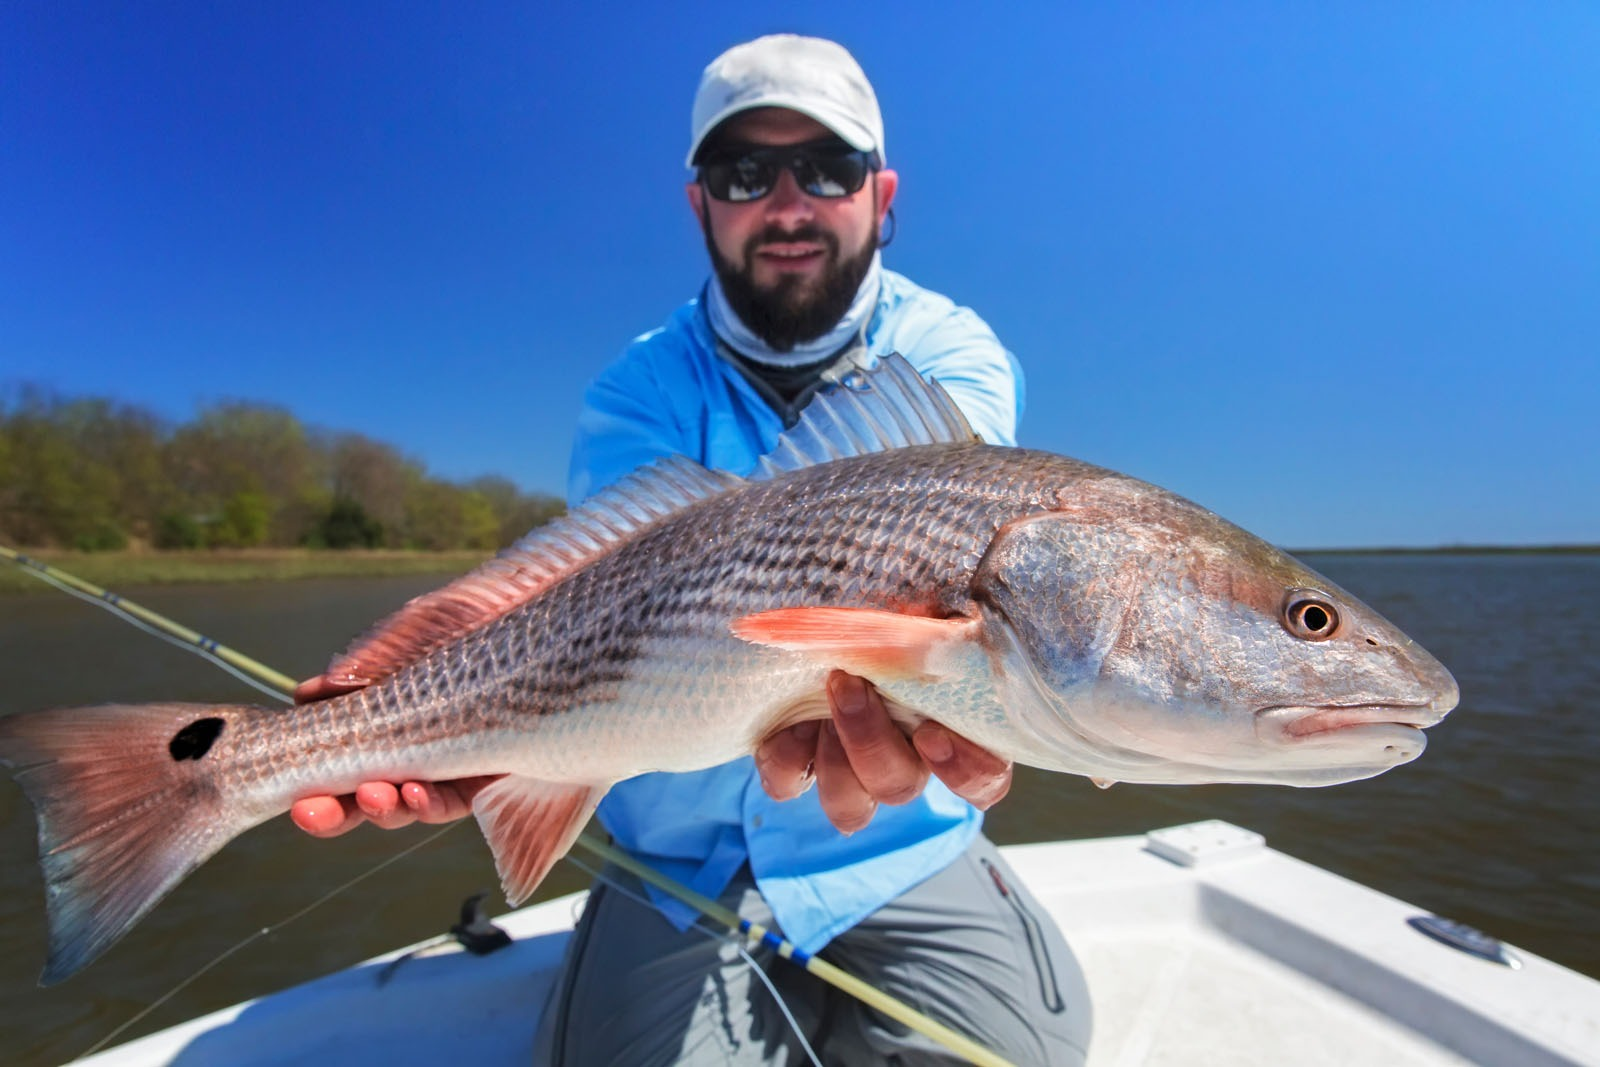 Hilton head fishing charters sightseeing cruises for Hilton head inshore fishing